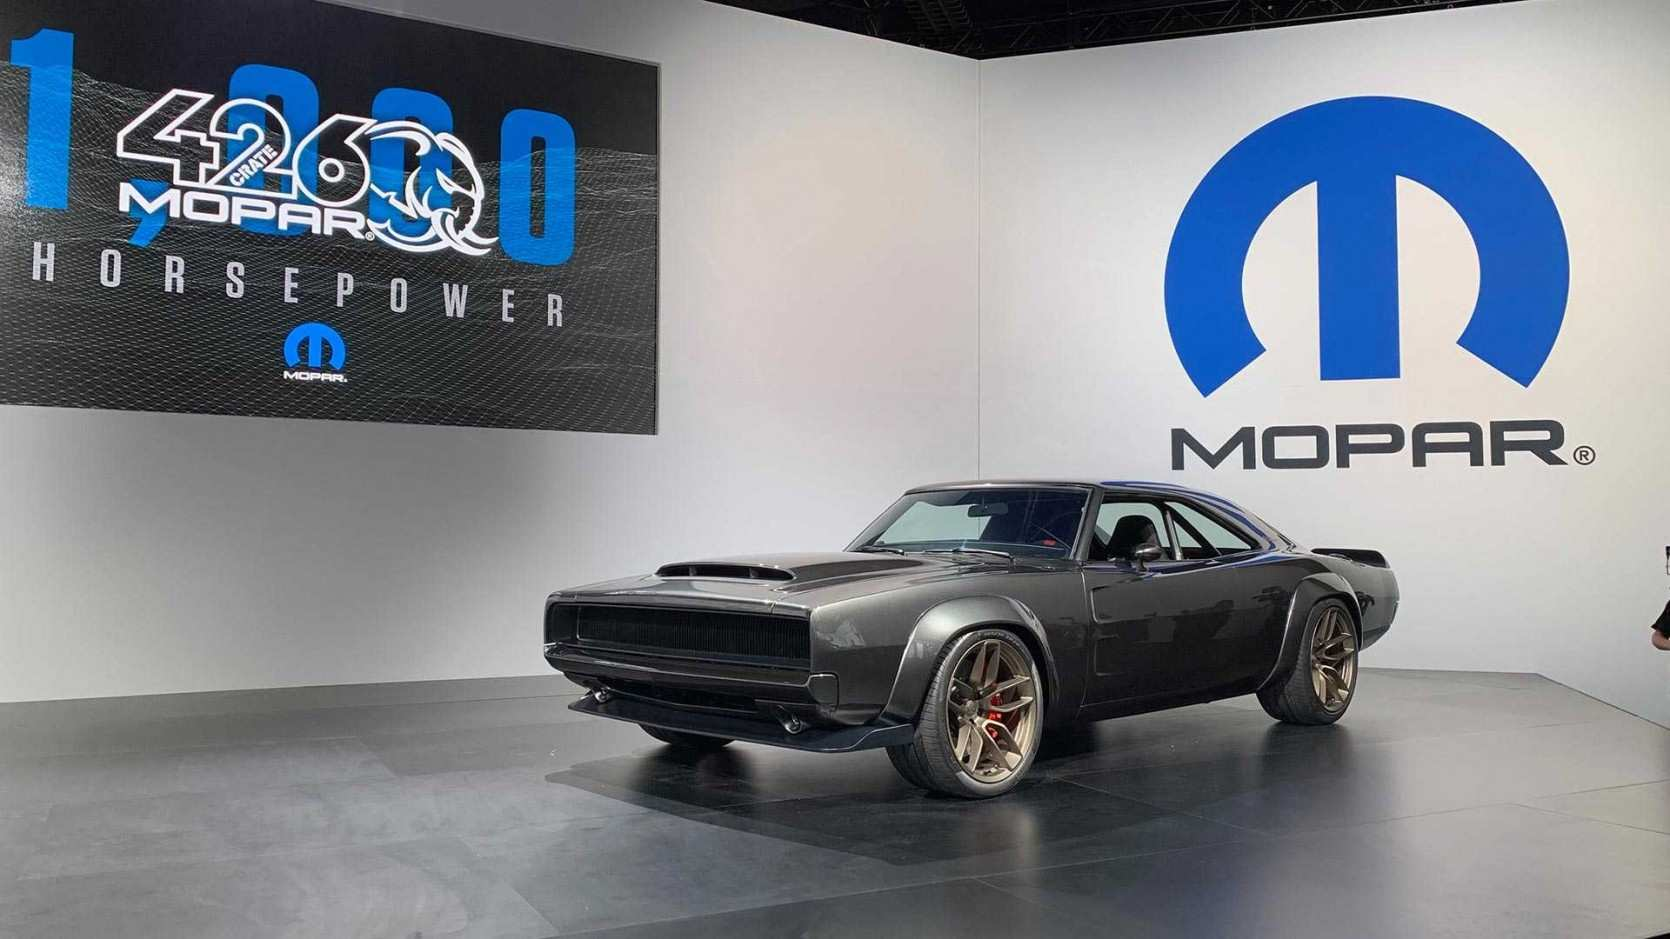 78 The Best Dodge Supercharger 2020 Speed Test